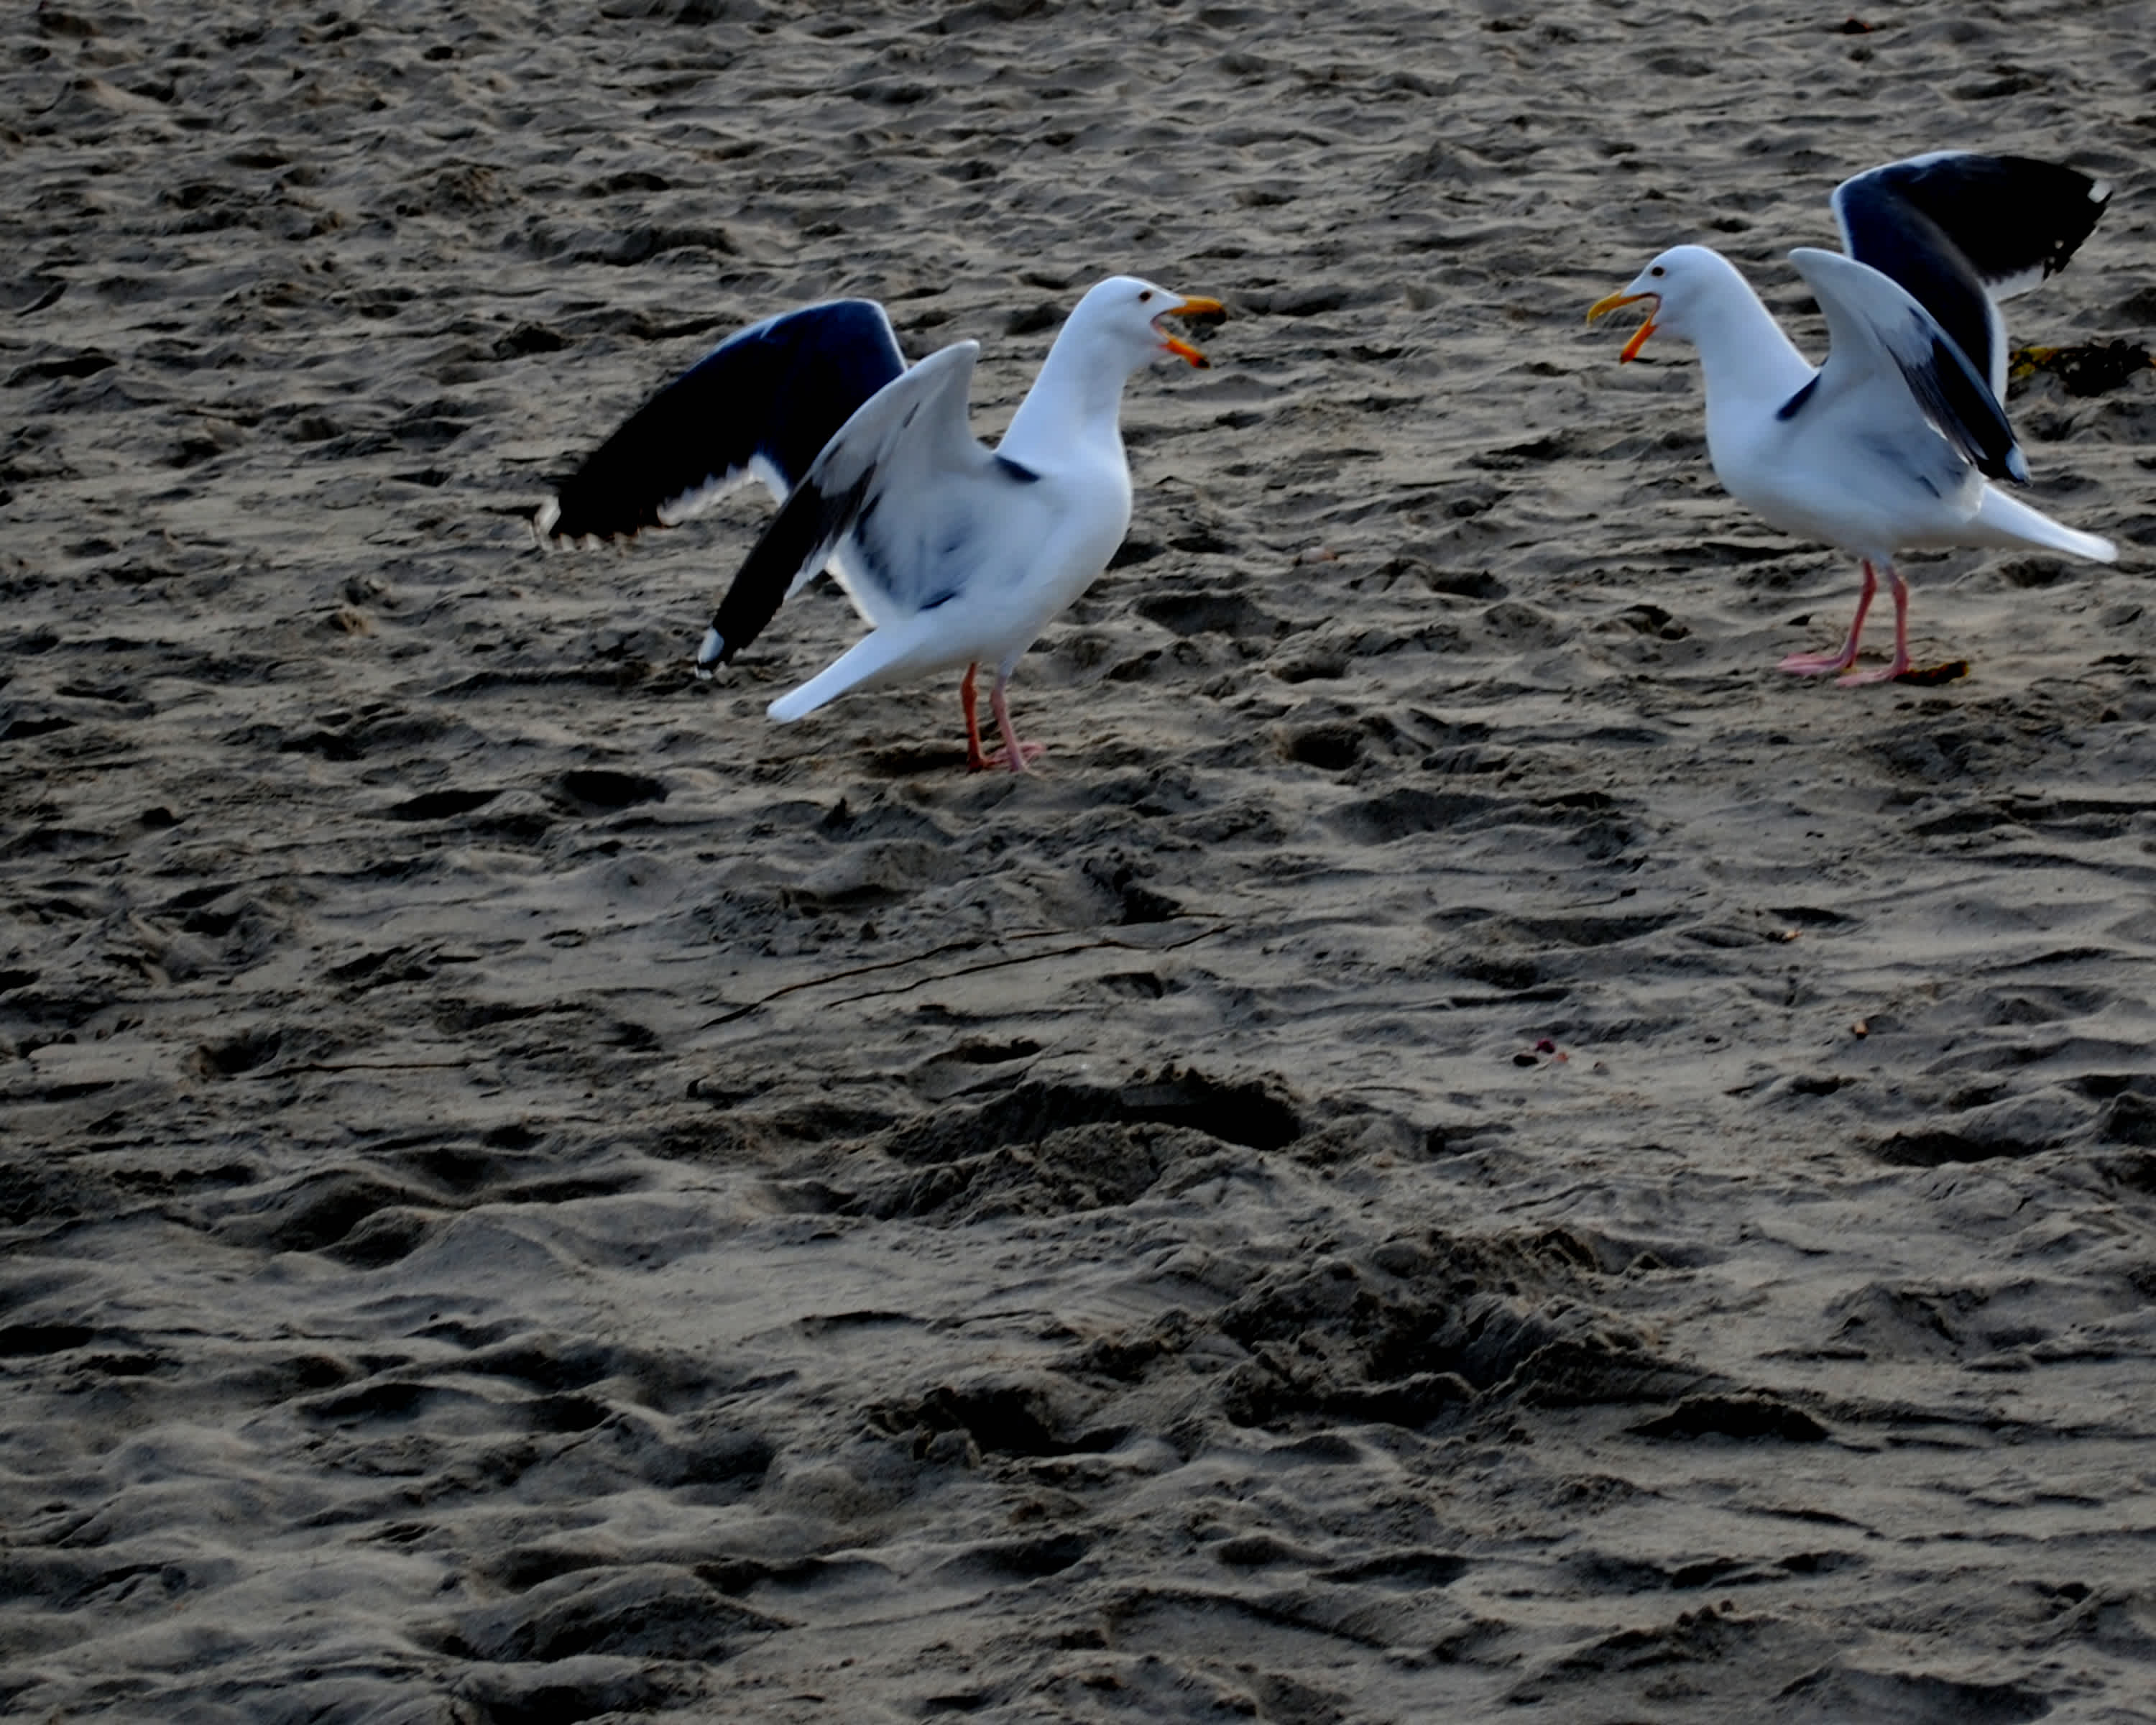 Two white birds flapping wings at each other on the sand.